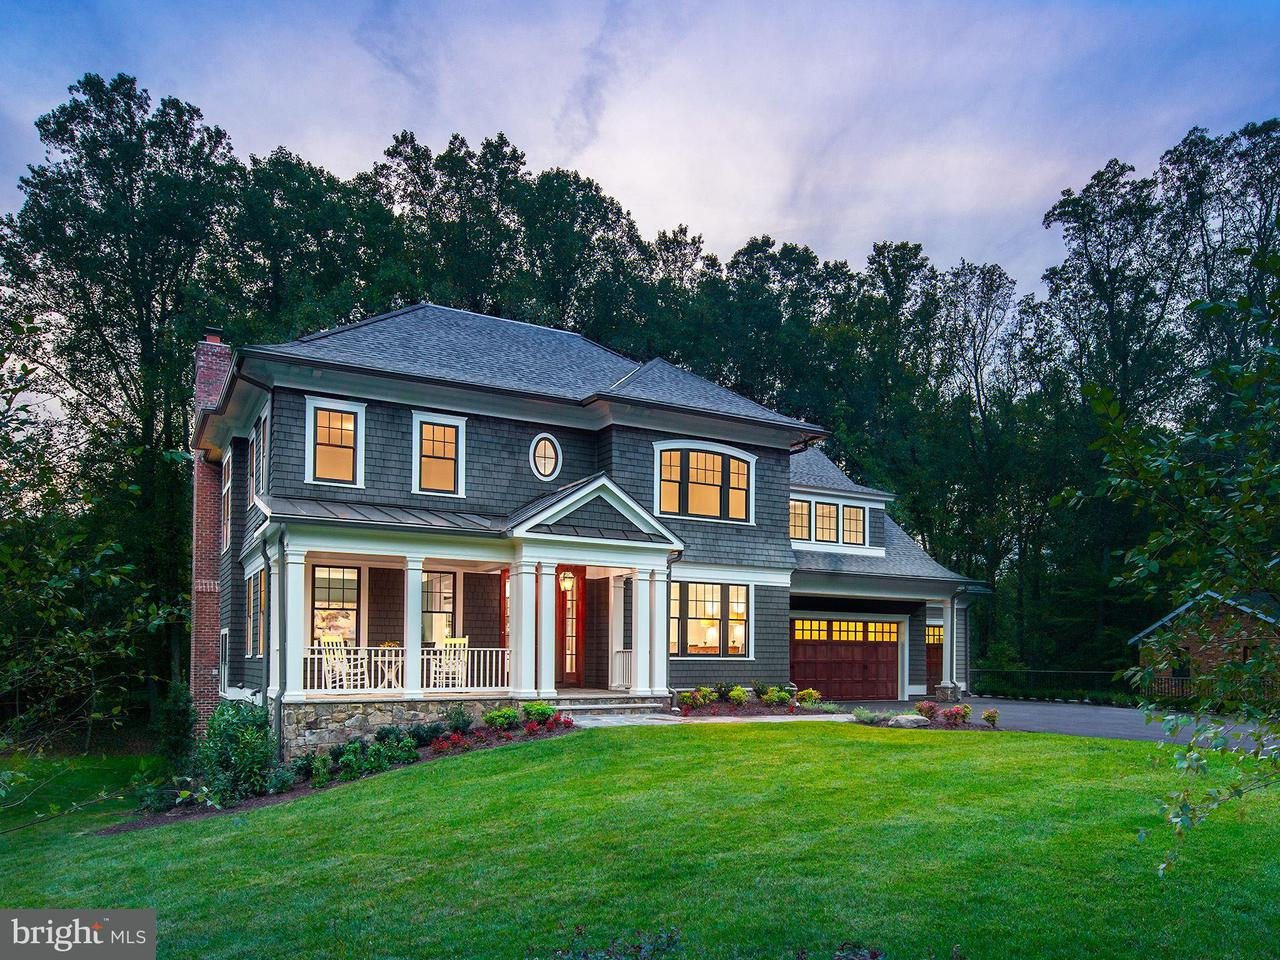 Single Family Home for Sale at 732 Lawton Street 732 Lawton Street McLean, Virginia 22101 United States